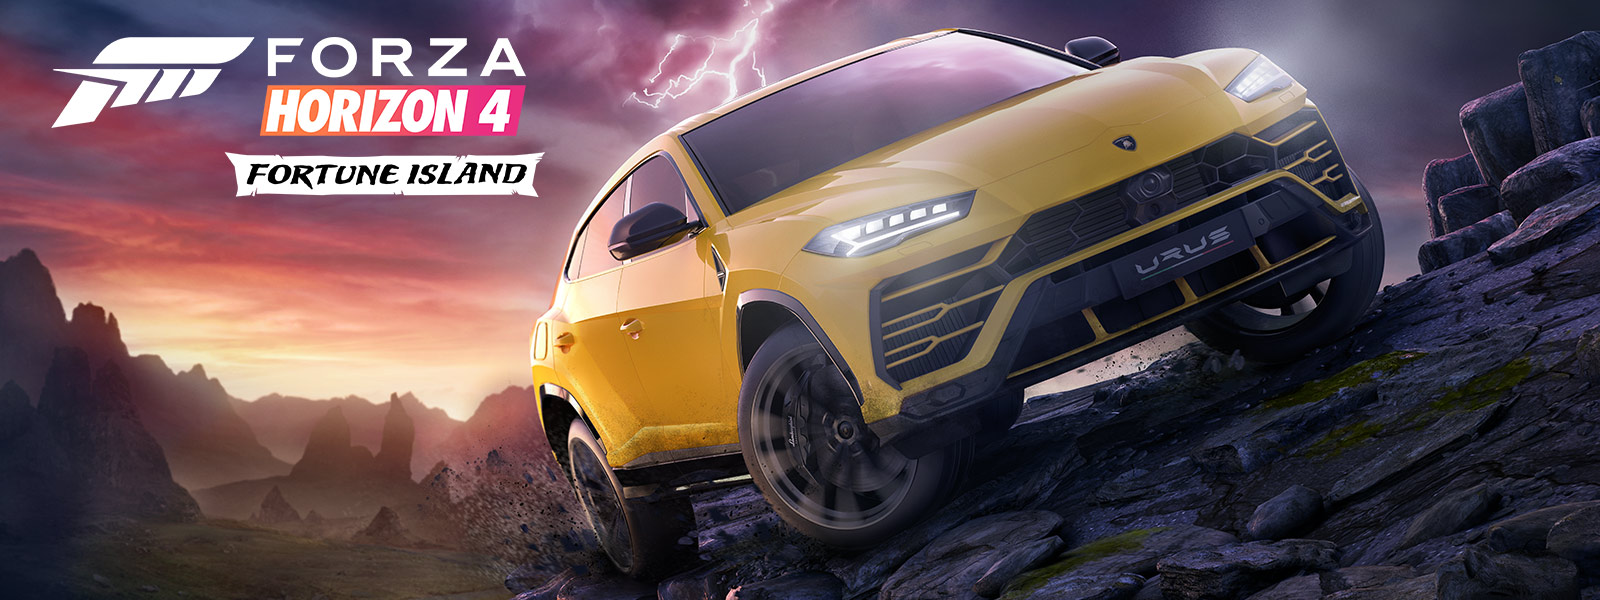 Forza Horizon 4 para Xbox One e Windows 10 | Xbox